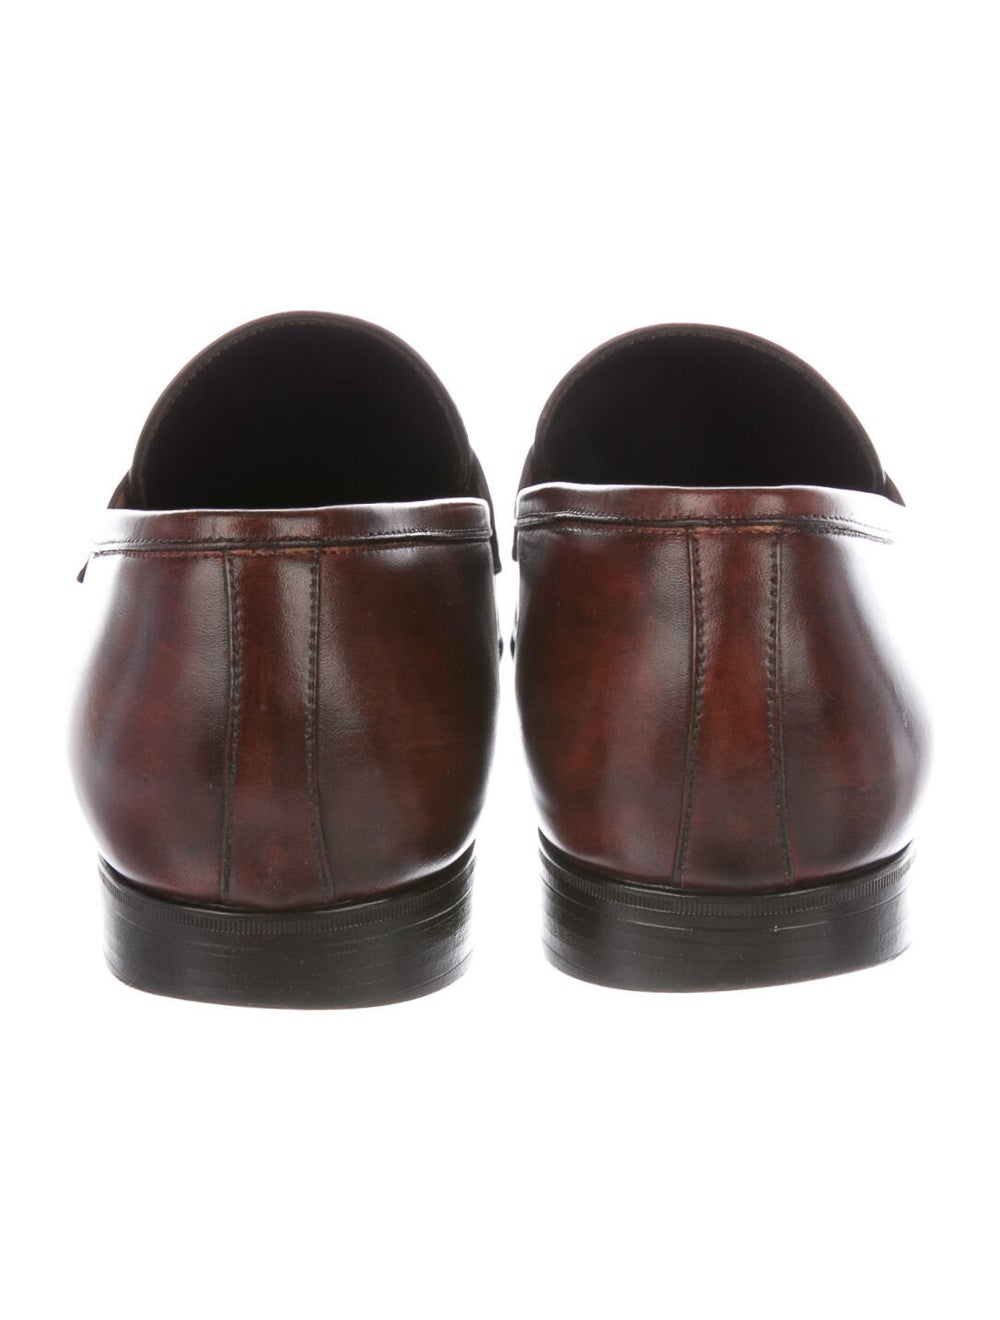 Santoni Leather Penny Loafers brown - image 4